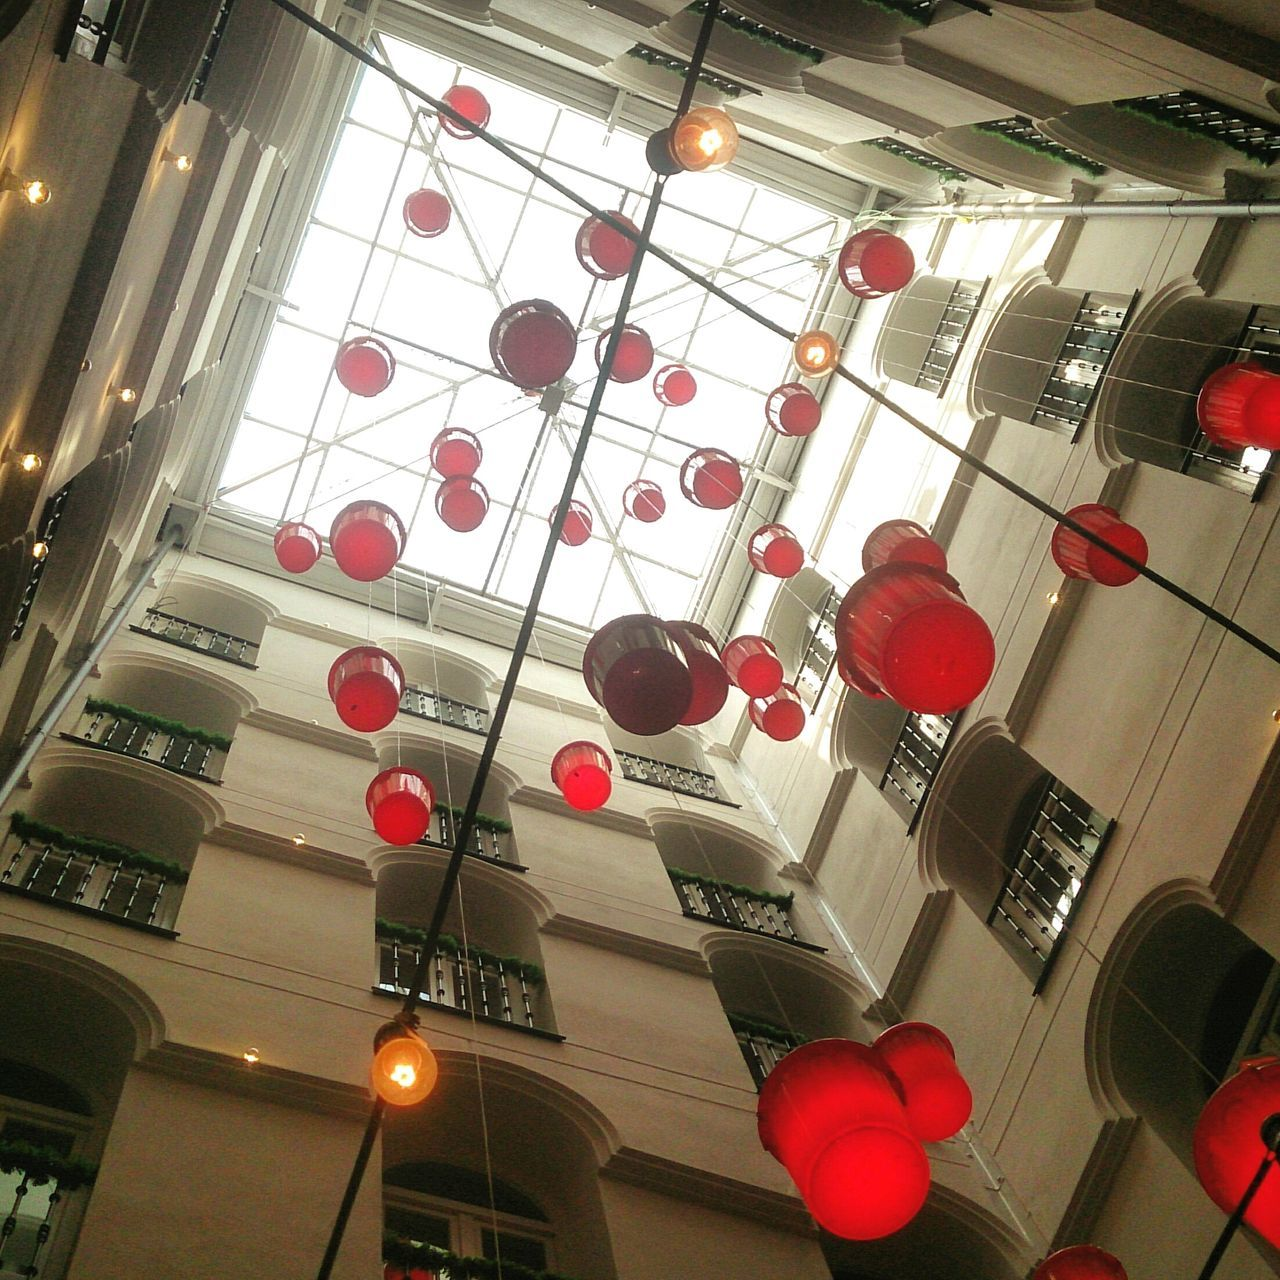 Cubos Rojo Patio Interior Buckets Hanging Decoration Indoors  Low Angle View Ceiling Architecture